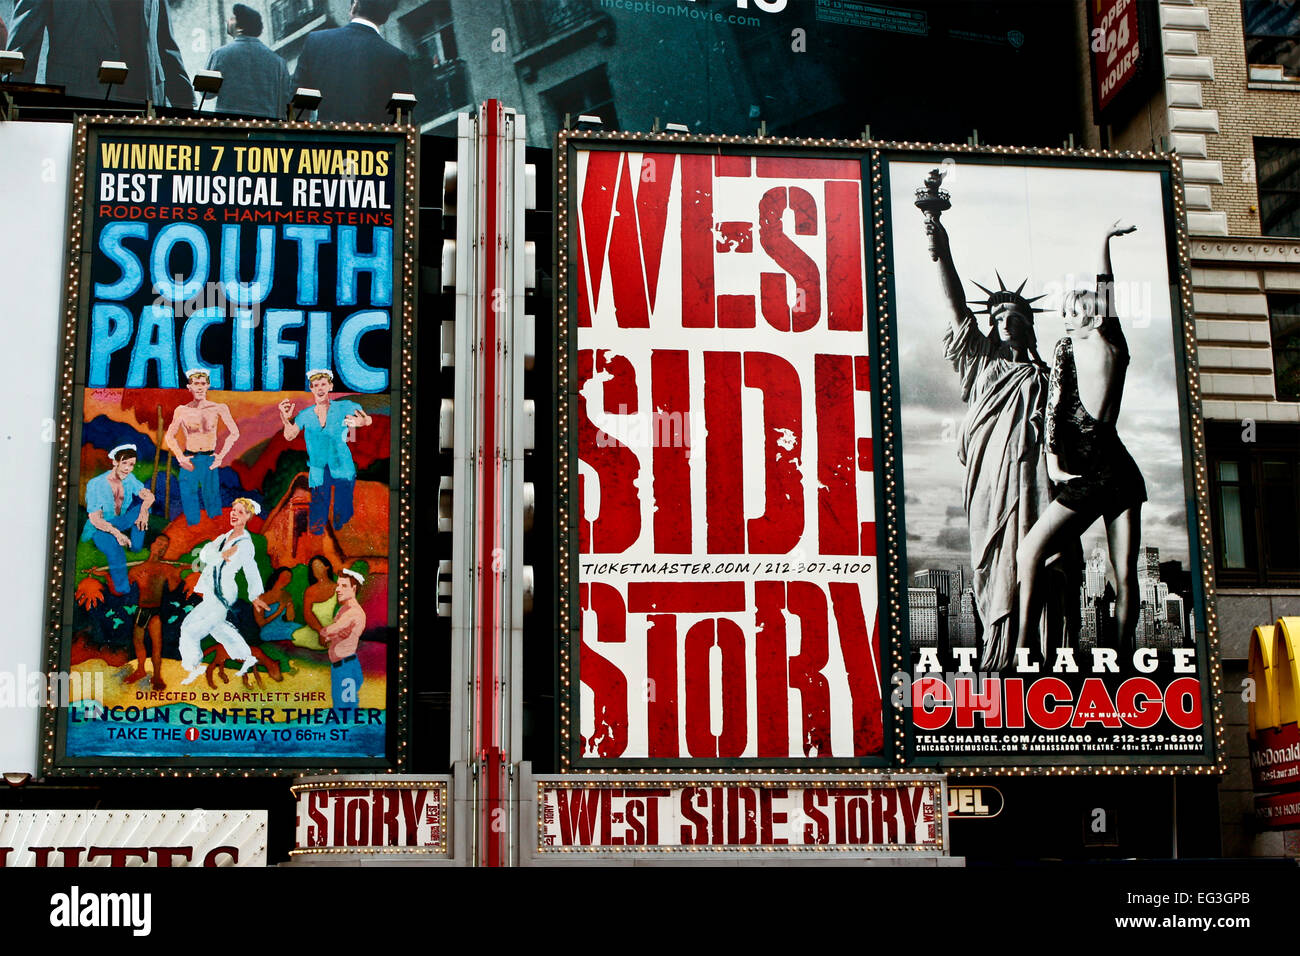 Broadway musical ads for shows, along 42nd Street at Times Square. Advertising billboard sign. Theater district. - Stock Image